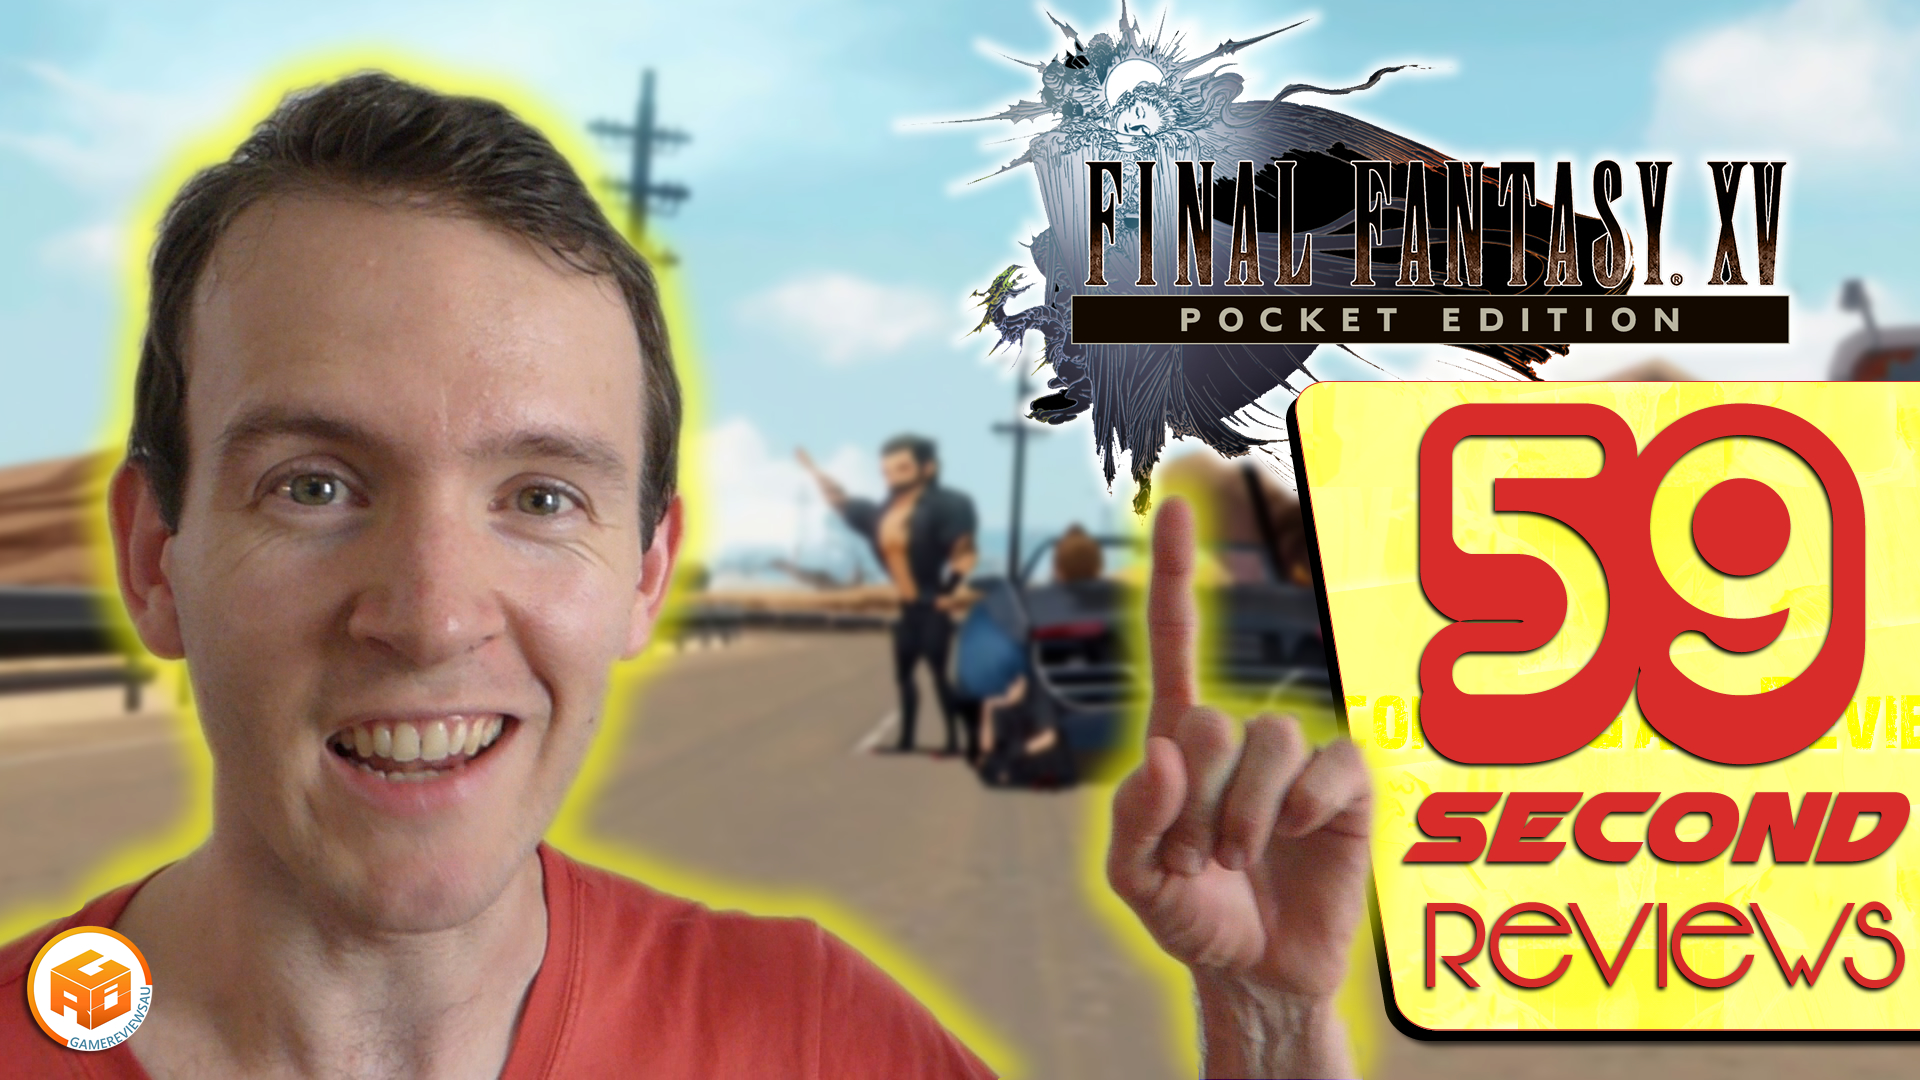 Final Fantasy XV Pocket Edition 59 Second Review